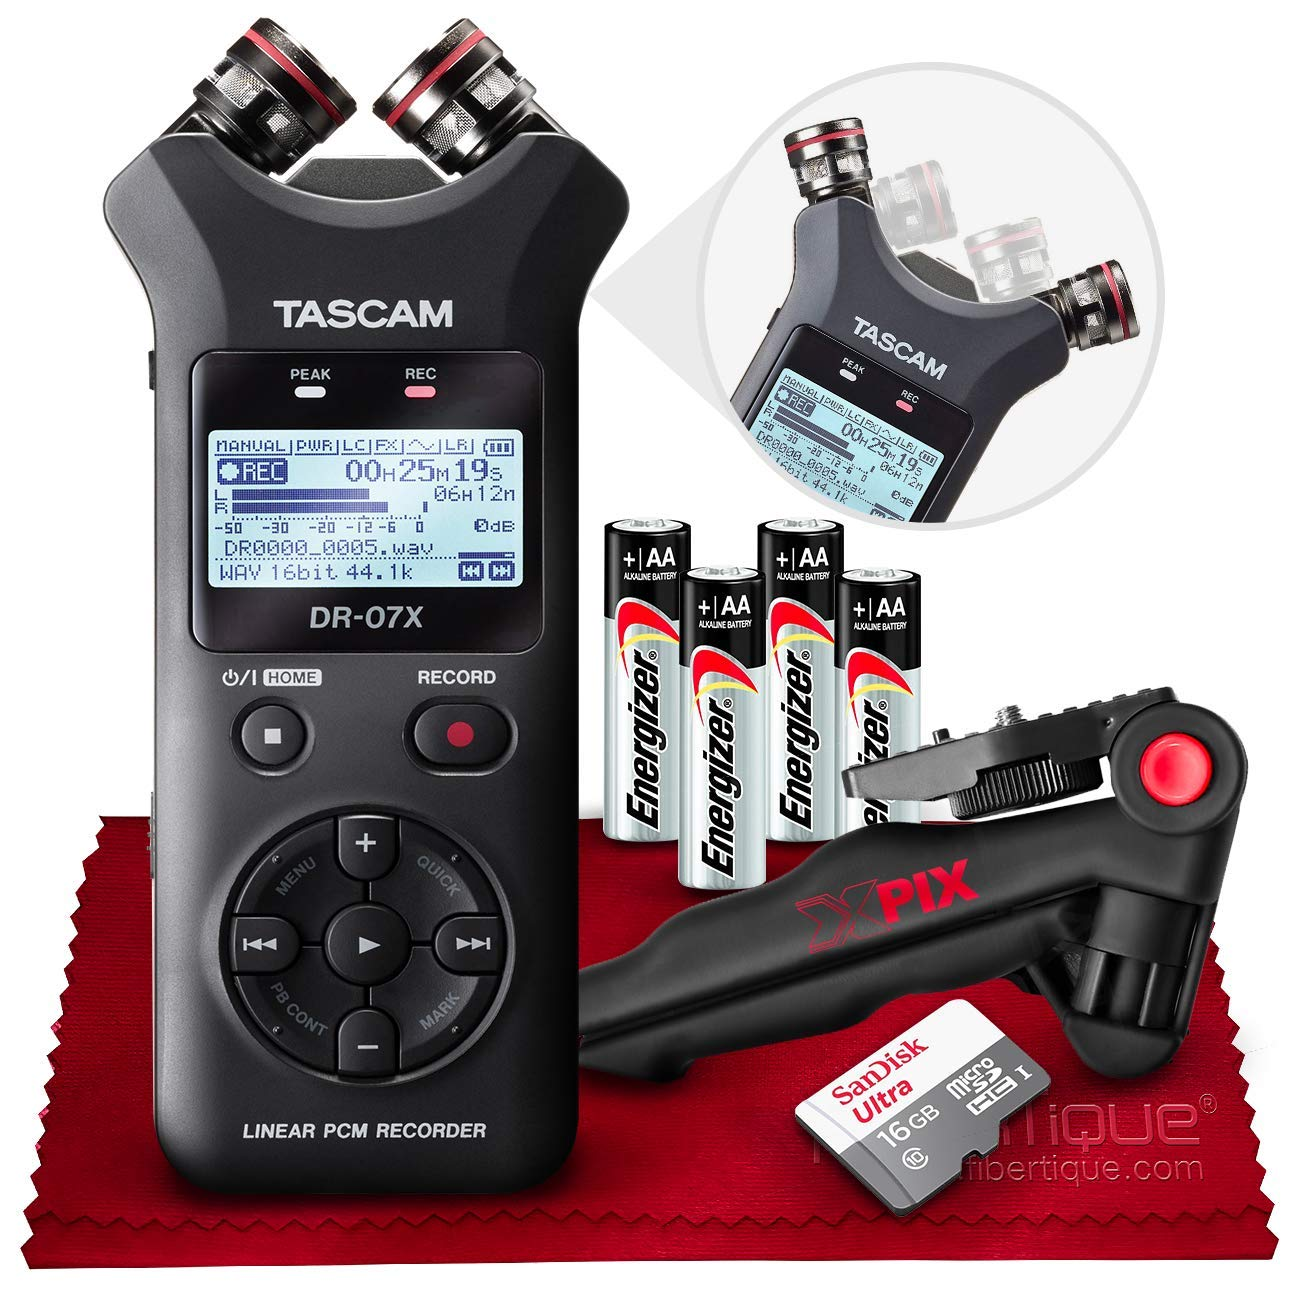 Tascam DR-07X Stereo Handheld Digital Audio Recorder with USB Audio Interface + 32GB + Table Tripod + Accessories Bundle